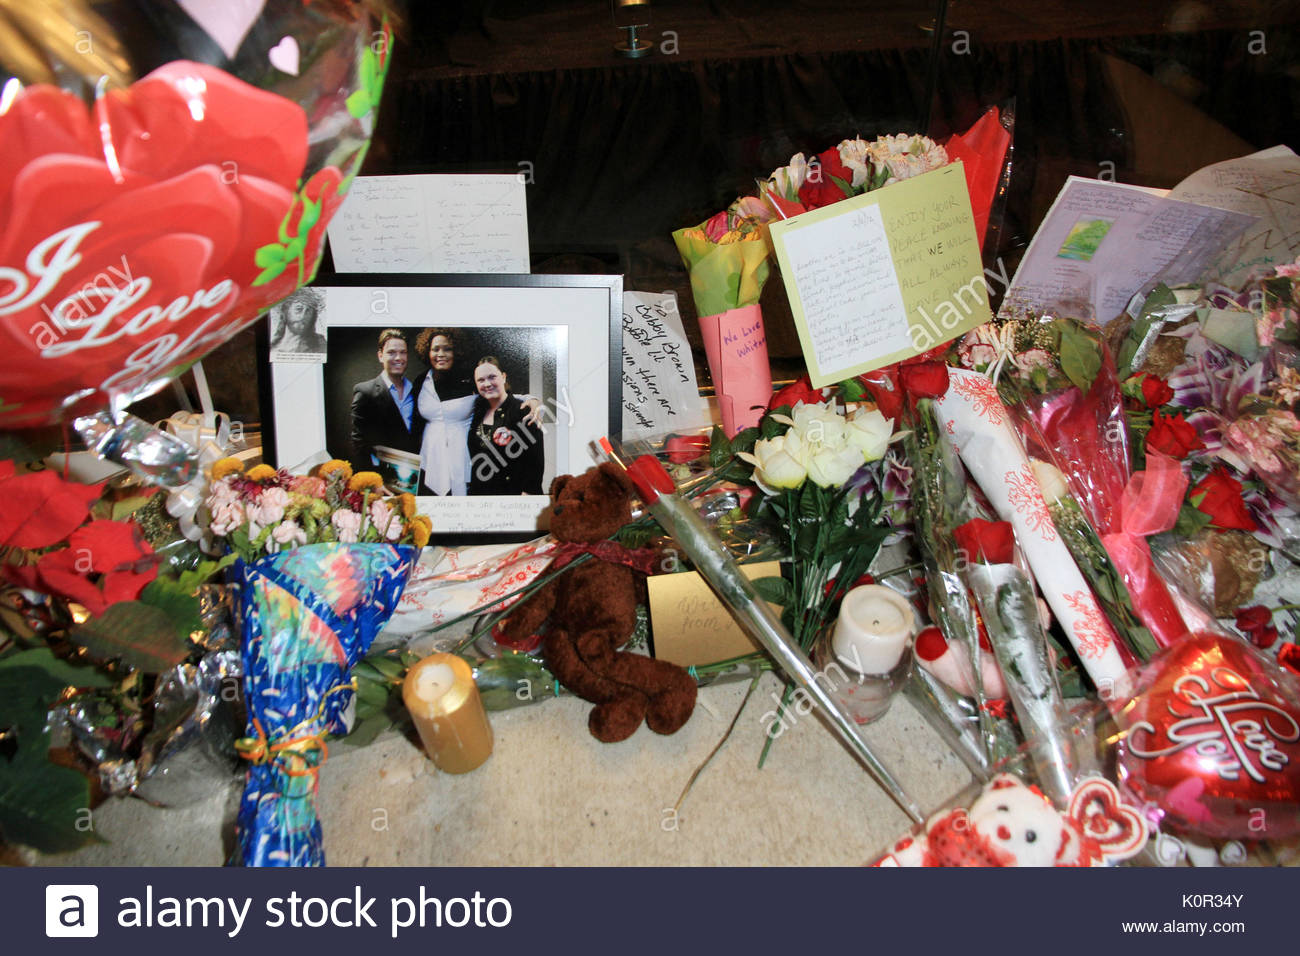 Funeral Home Stock Photos Funeral Home Stock Images Page 6 Alamy # Ventura Muebles Nigran